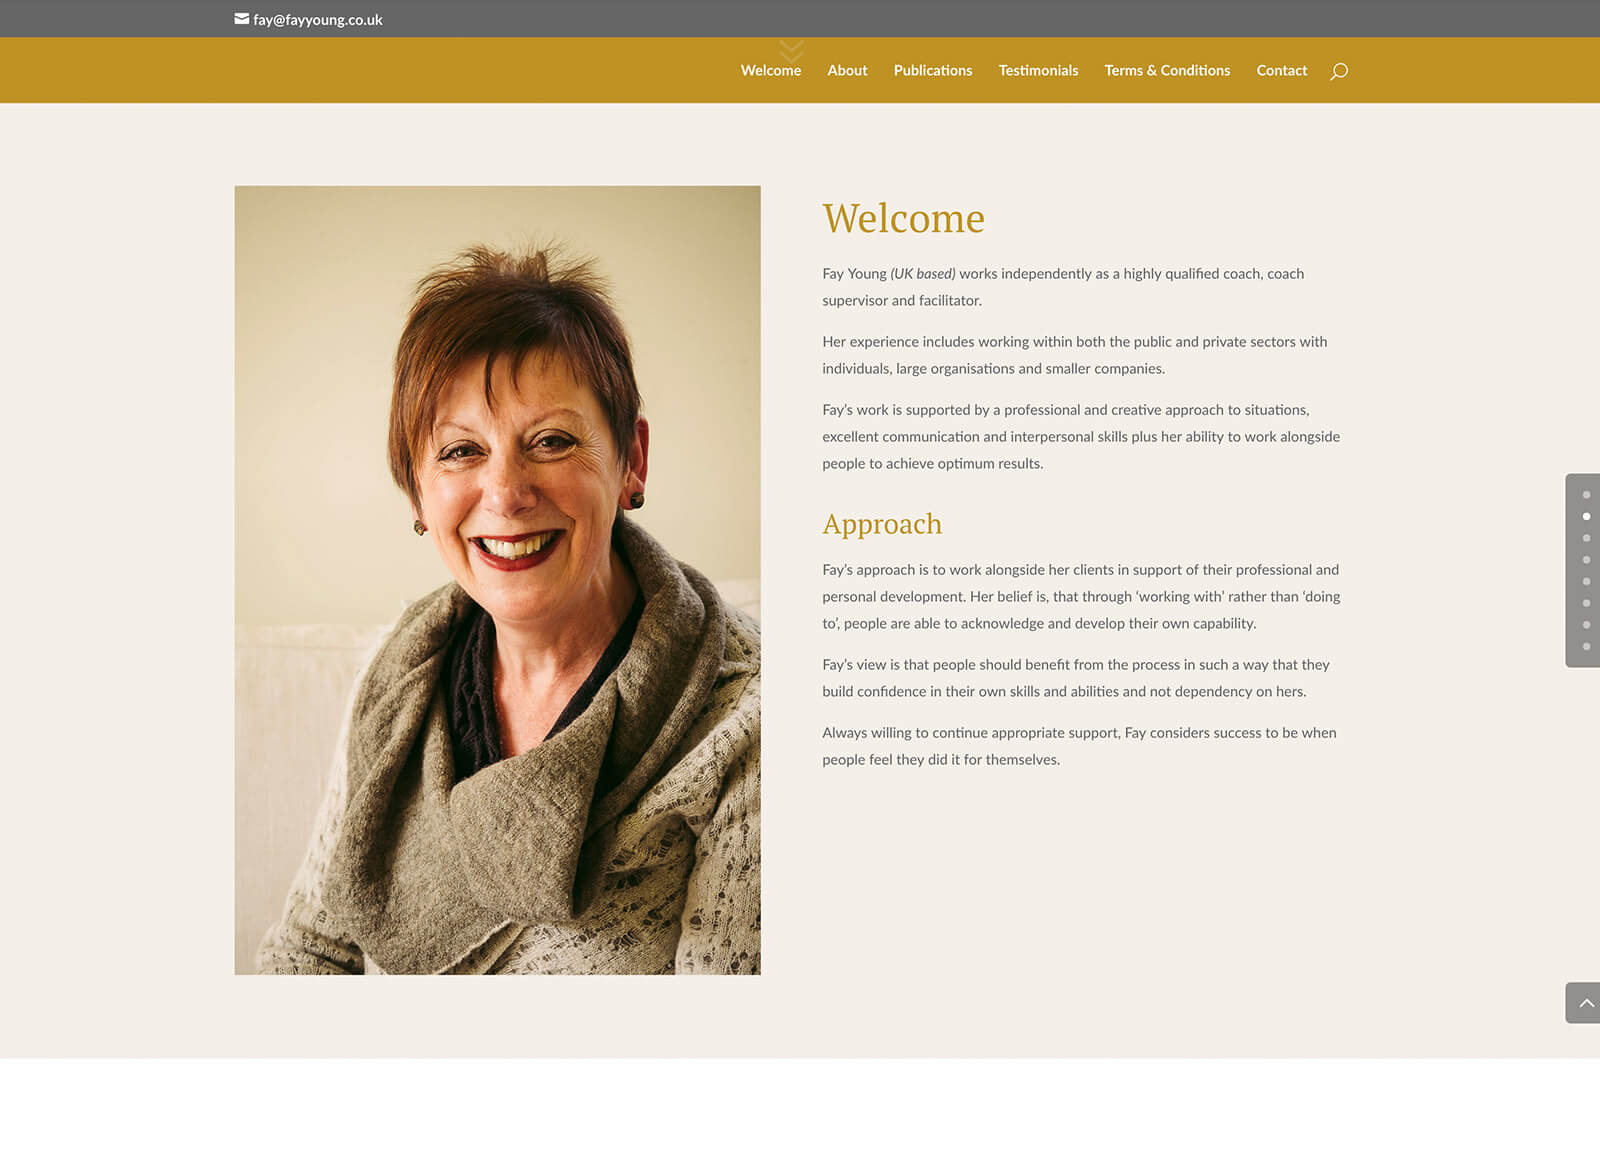 Quick website design for local self-employed consultant website: Welcome page